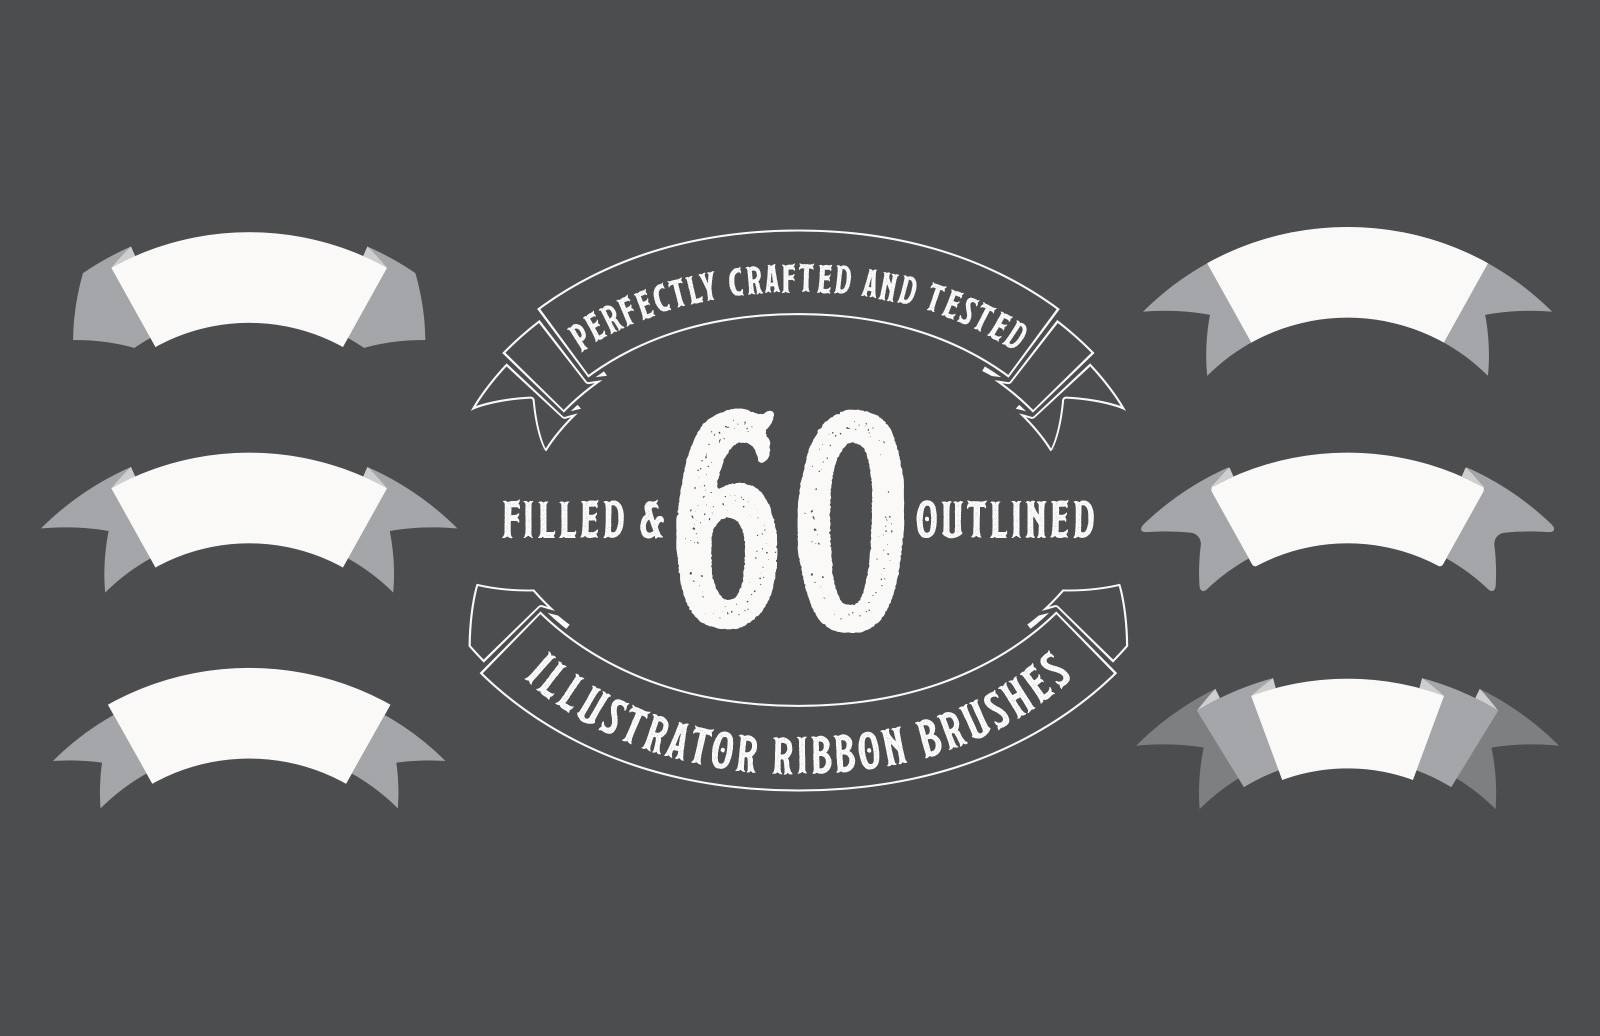 60 Illustrator Ribbon Brushes